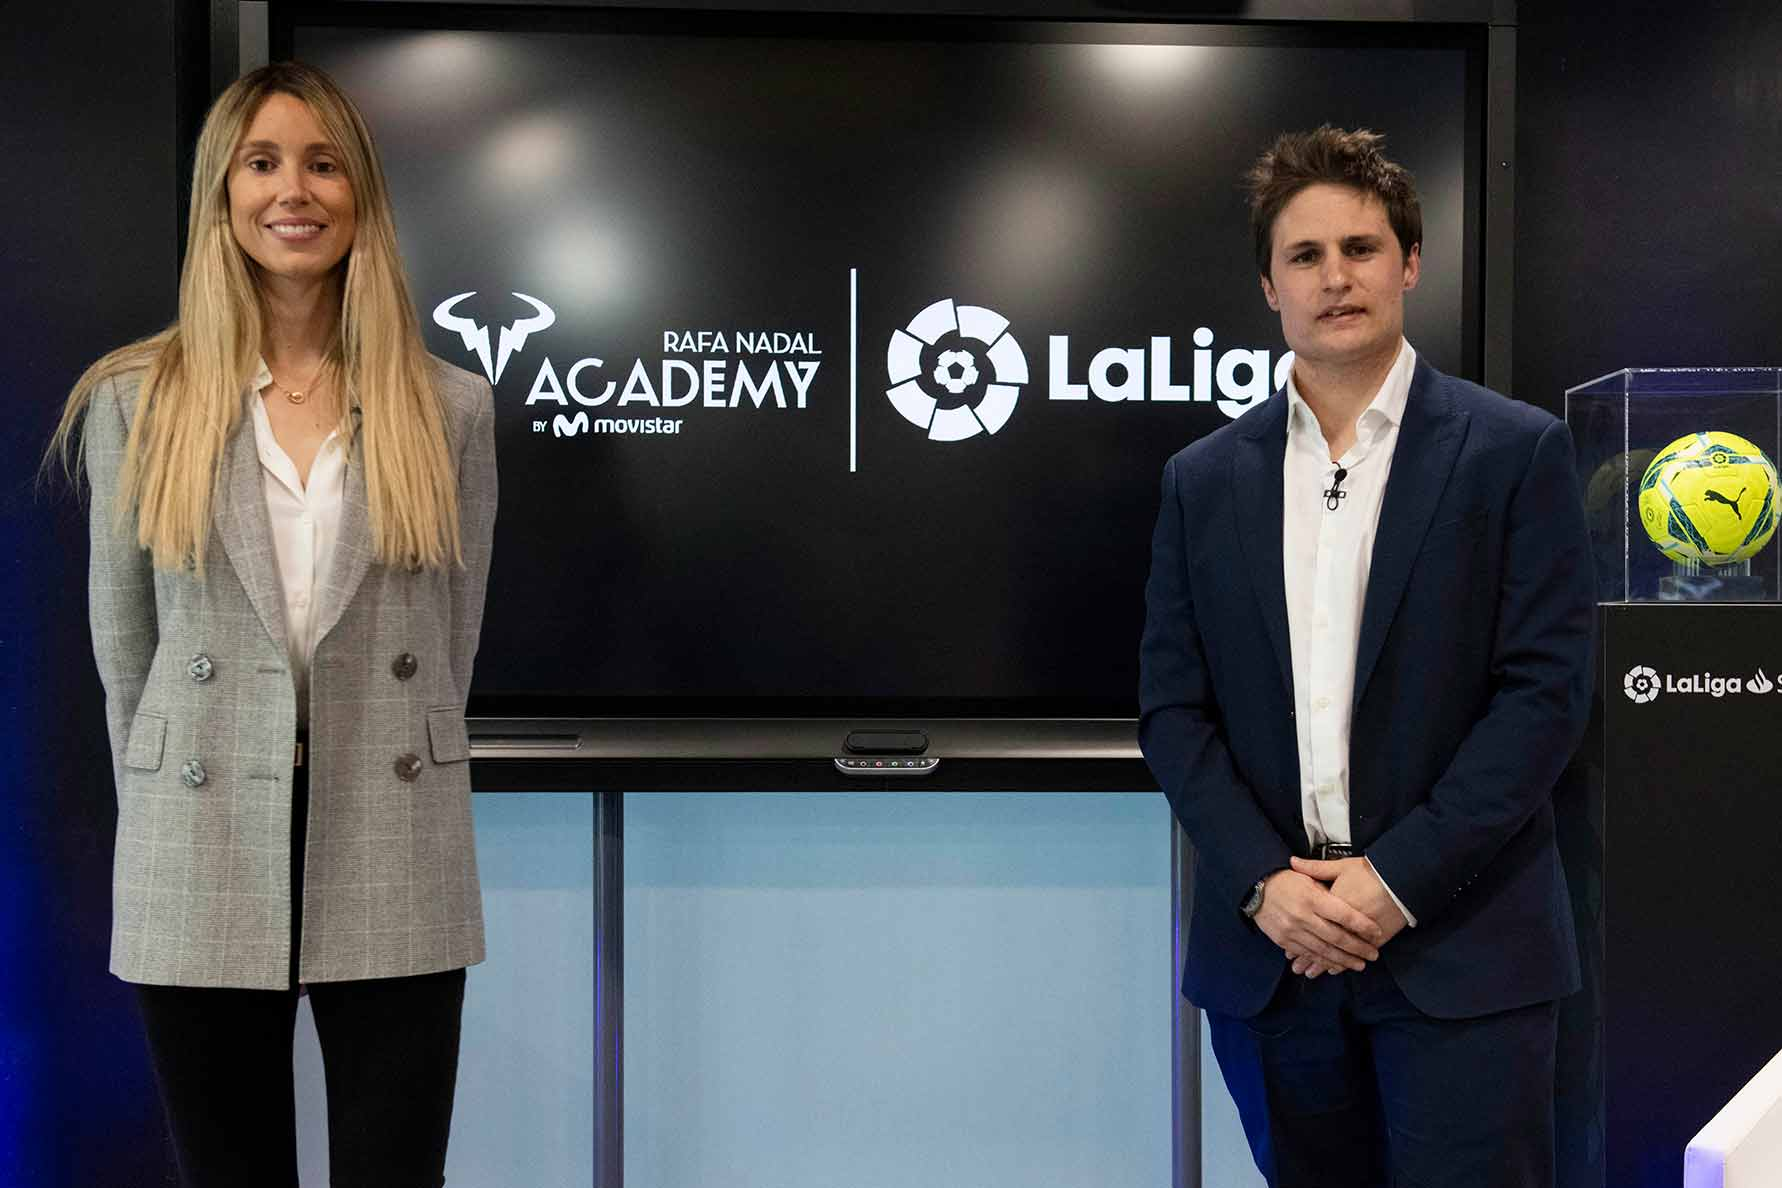 LaLiga and the Rafa Nadal Academy sign a framework collaboration agreement to boost both brands